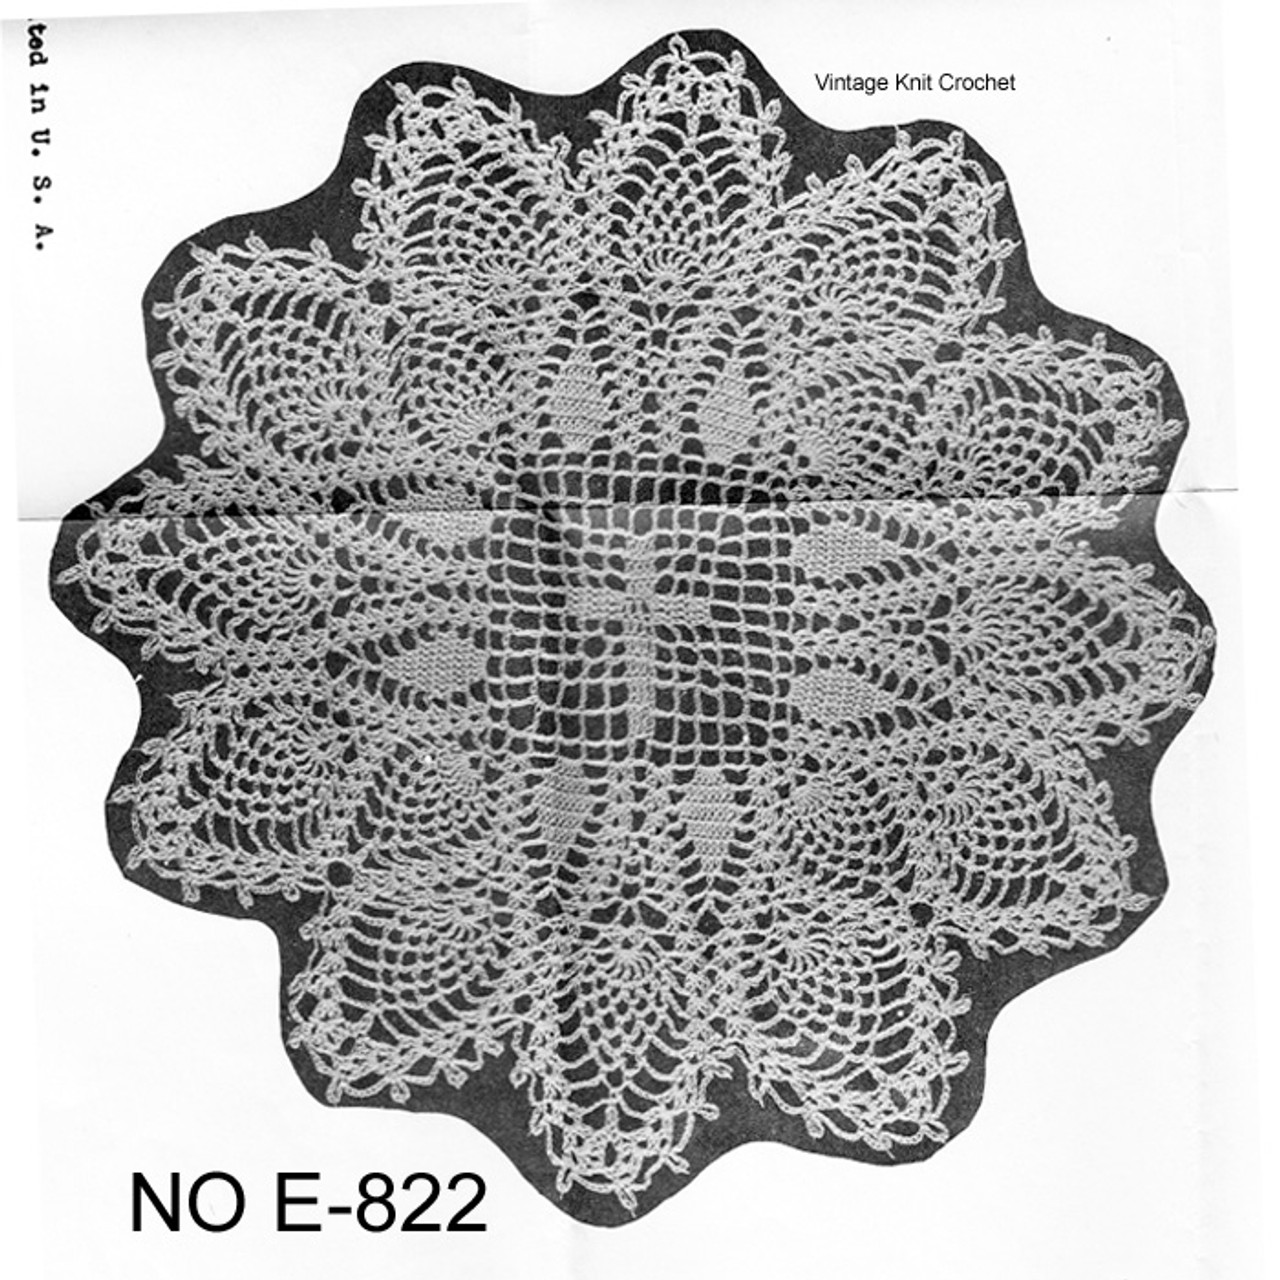 Mail Order 822 Crochet Bible Cover Doily Pattern